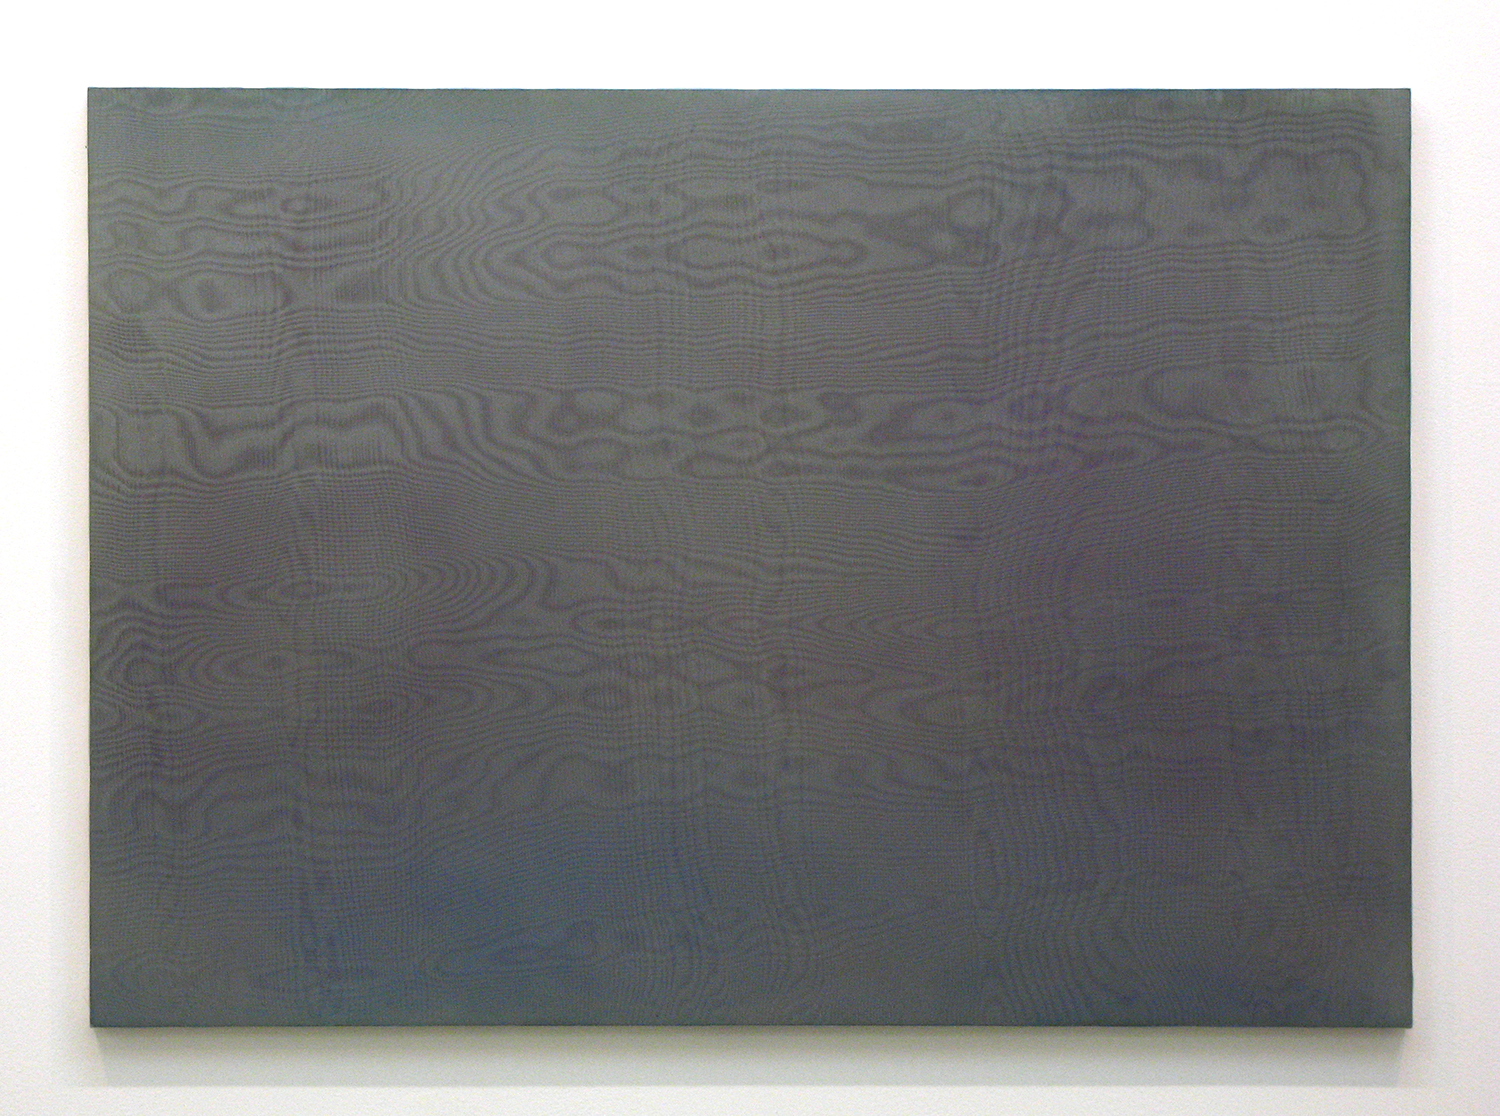 afterglow #6|残光 #6|panel, stainless steel sheet, glass organdy, acrylic|594 x 840 mm|2008